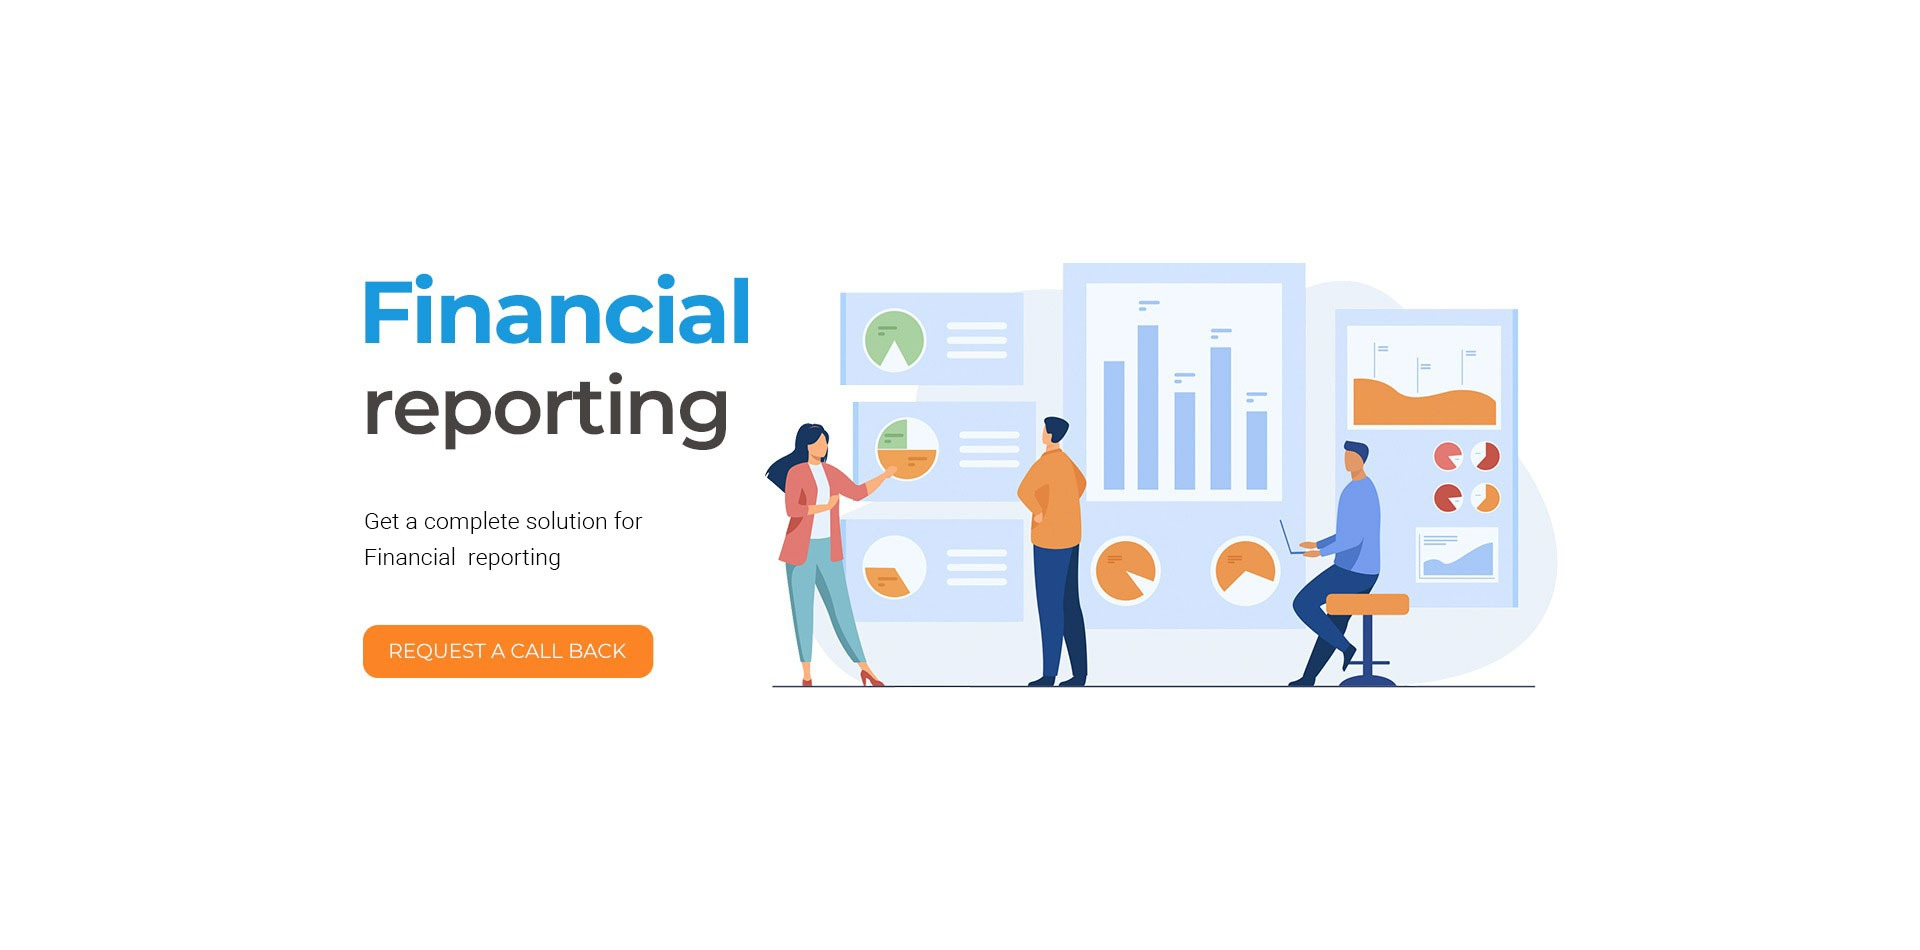 4.-Financial-reporting